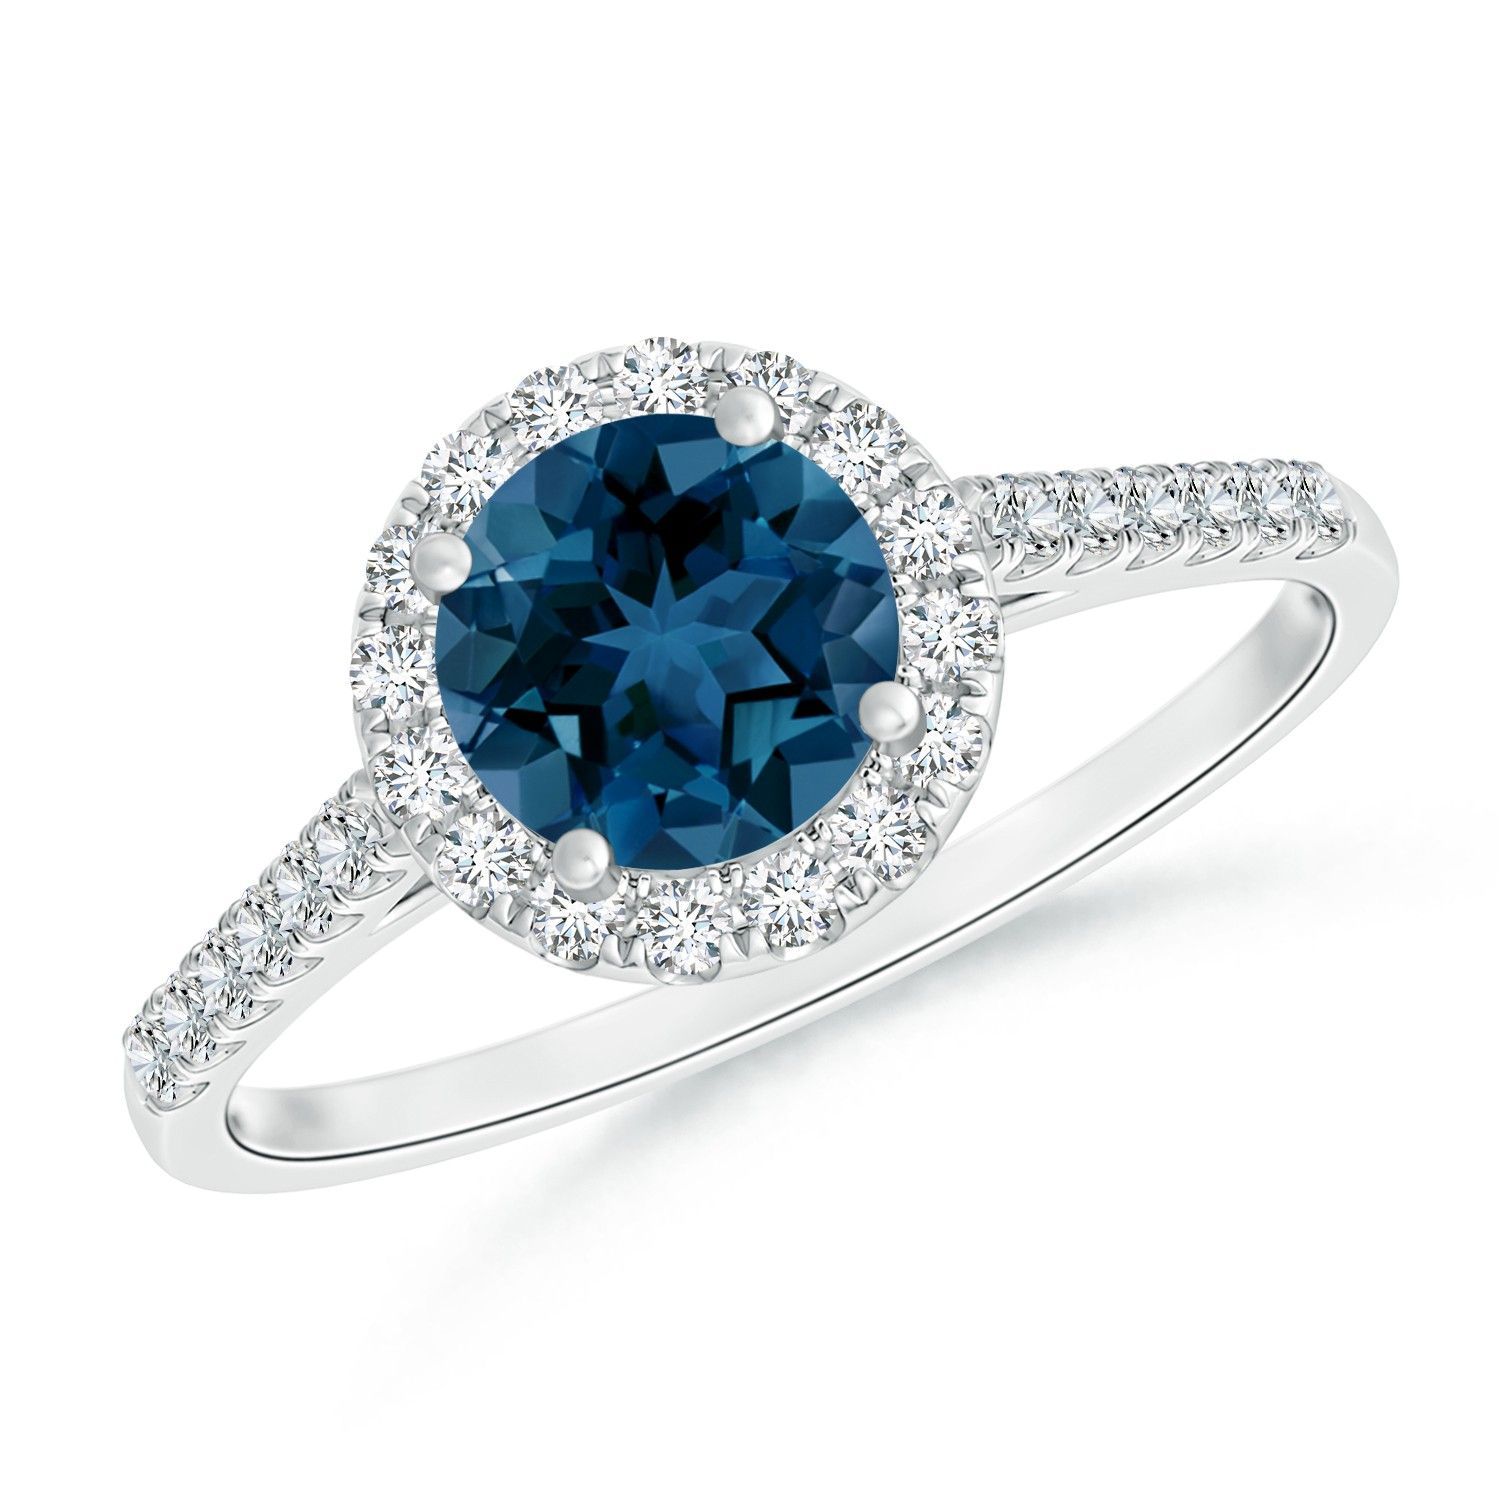 Angara Natural Tanzanite Diamond Engagement Ring in Platinum